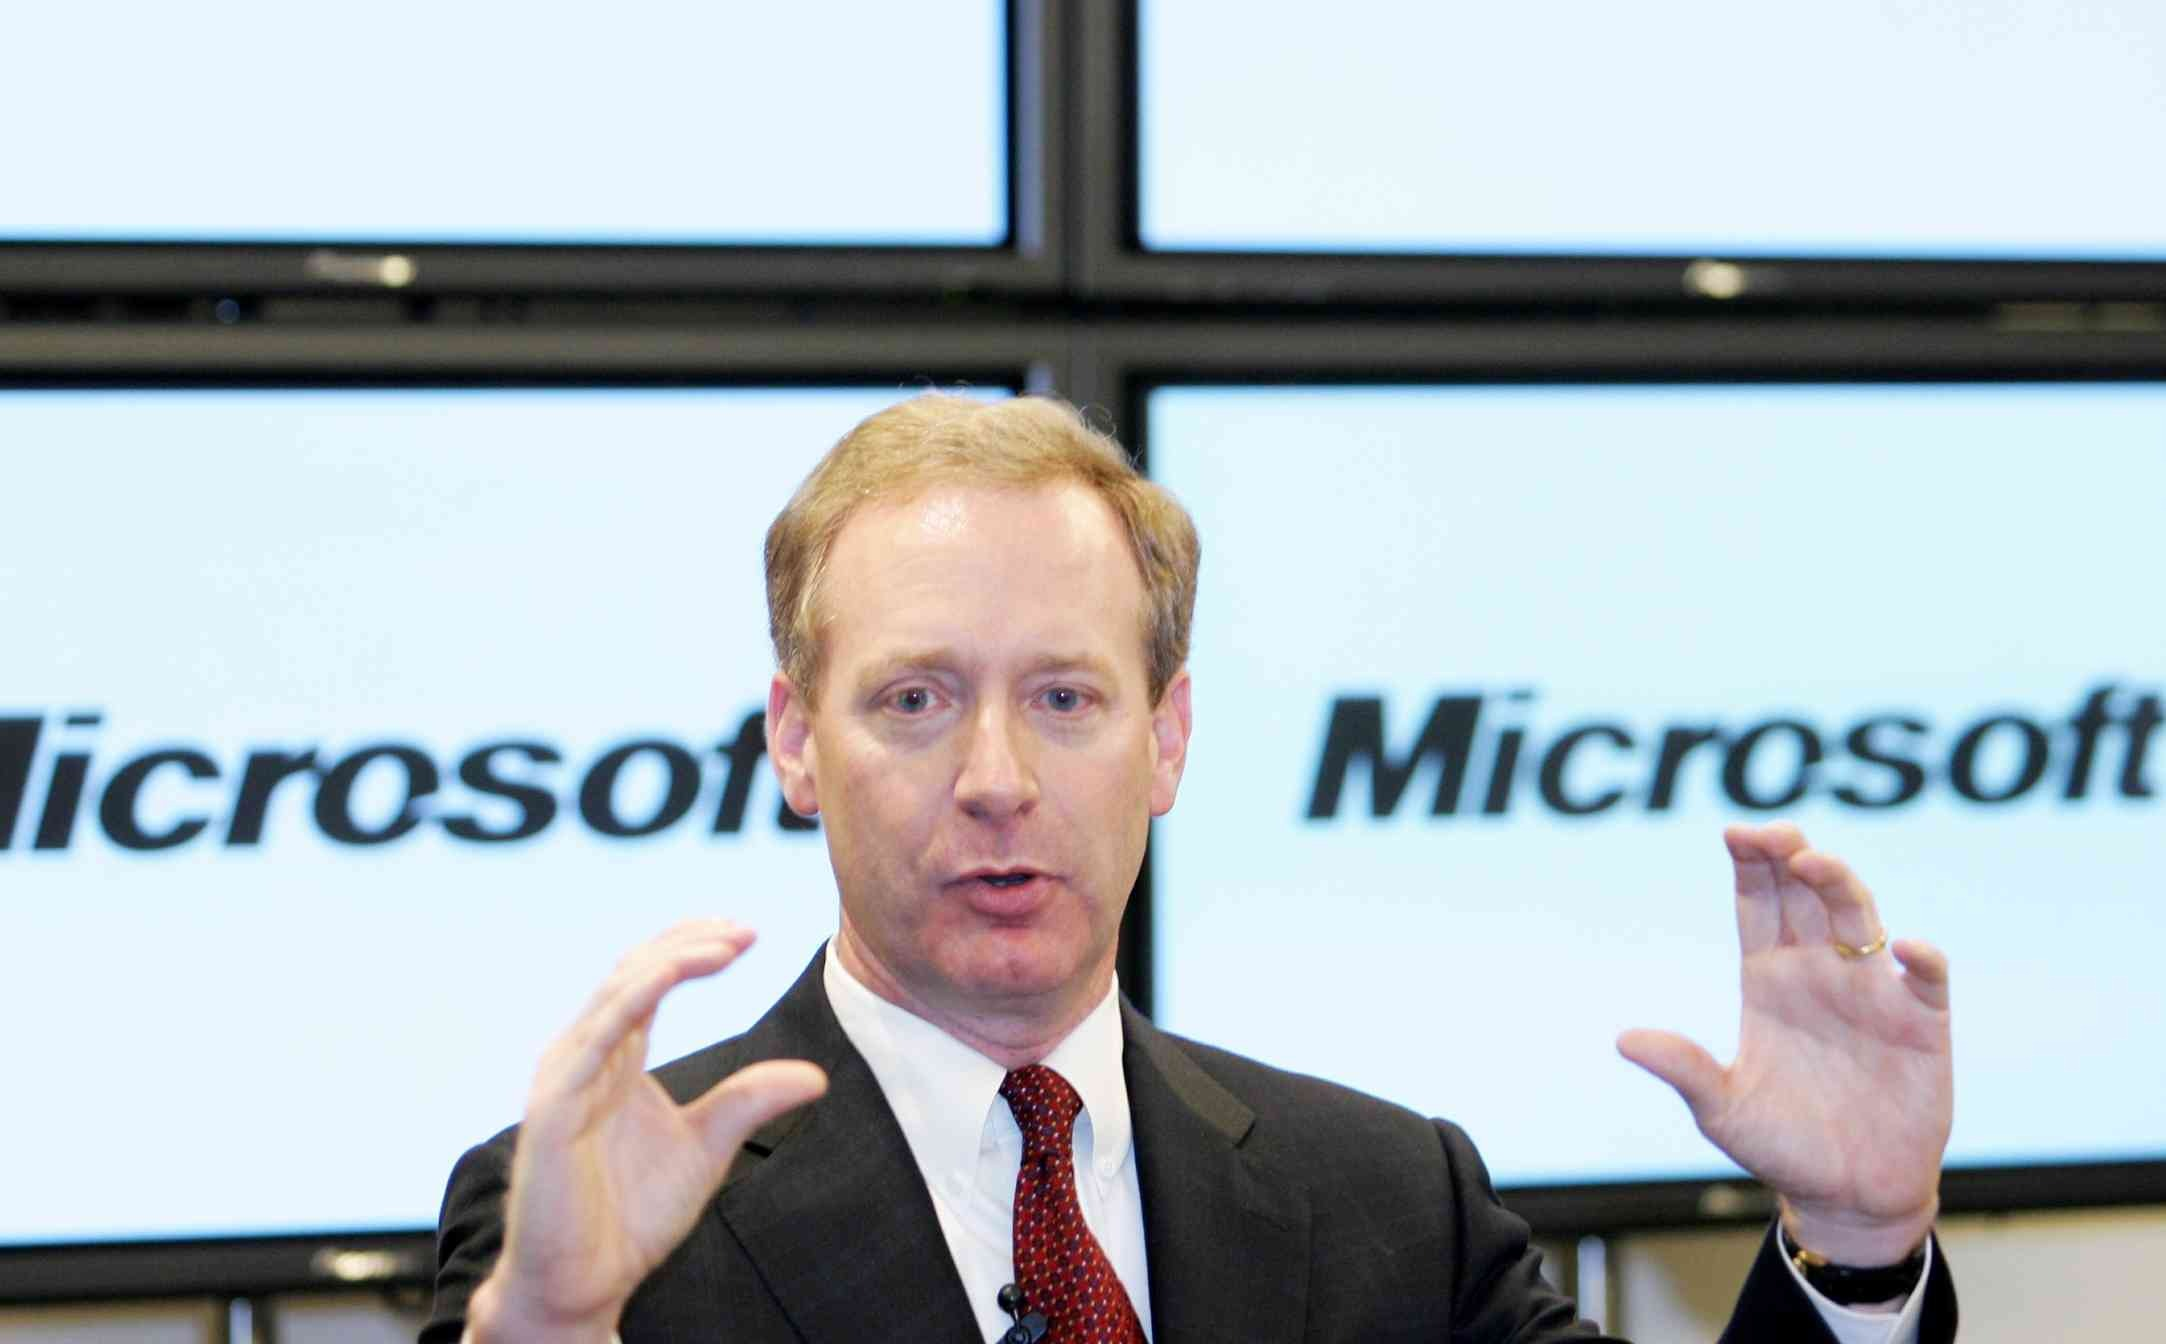 Microsoft General Counsel Brad Smith says Microsoft asked the Justice Department to let it divulge more information to clear its name -- but was rebuffed last week.